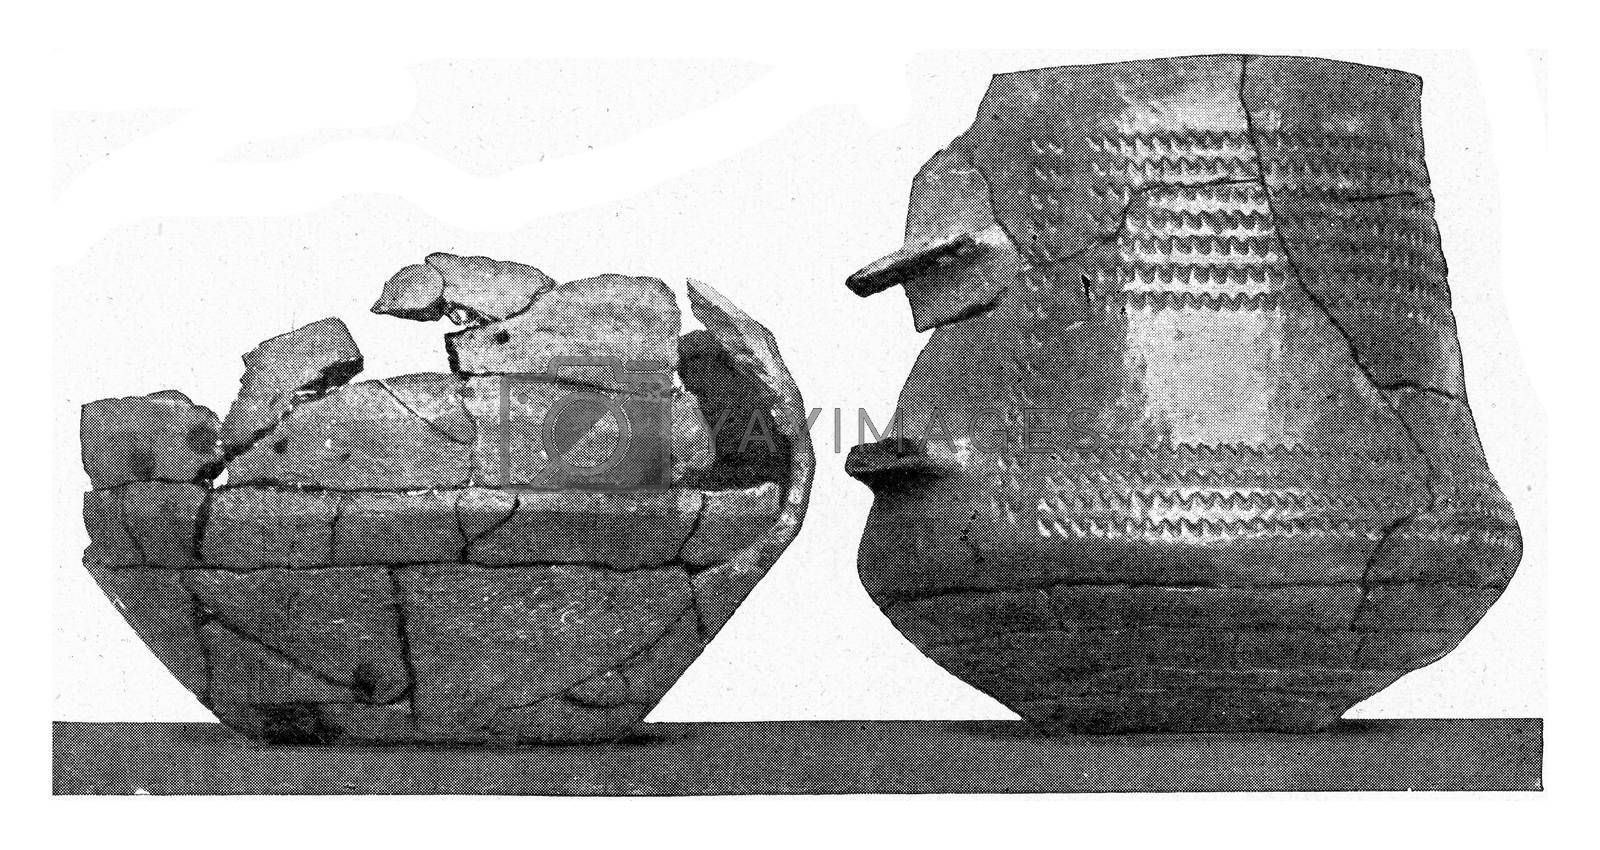 Pottery with parallel horizontal cracks, vintage engraved illustration. From the Universe and Humanity, 1910.